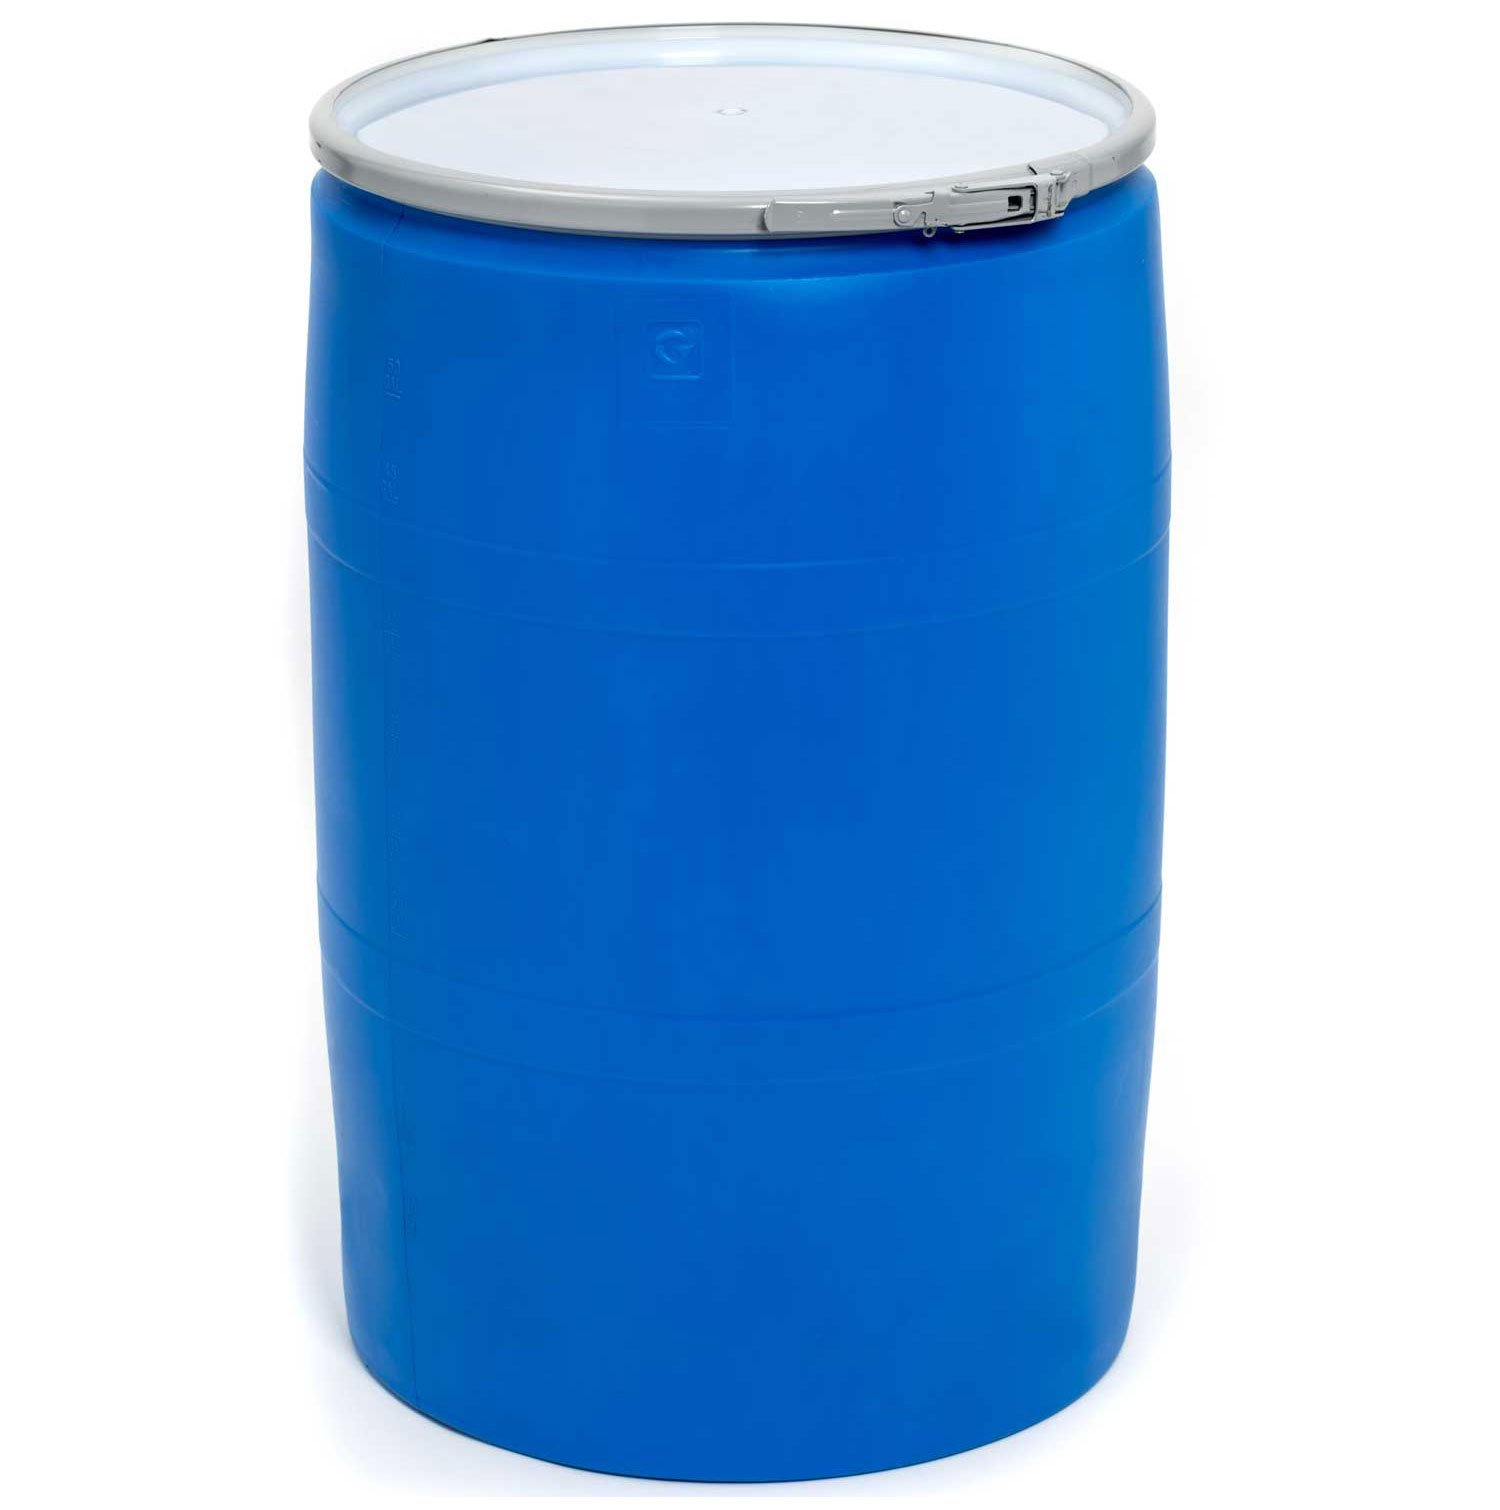 Mauser POLY55OHBLPC, 55 Gallon Open-Head Plastic Drum with Plain Cover - Blue